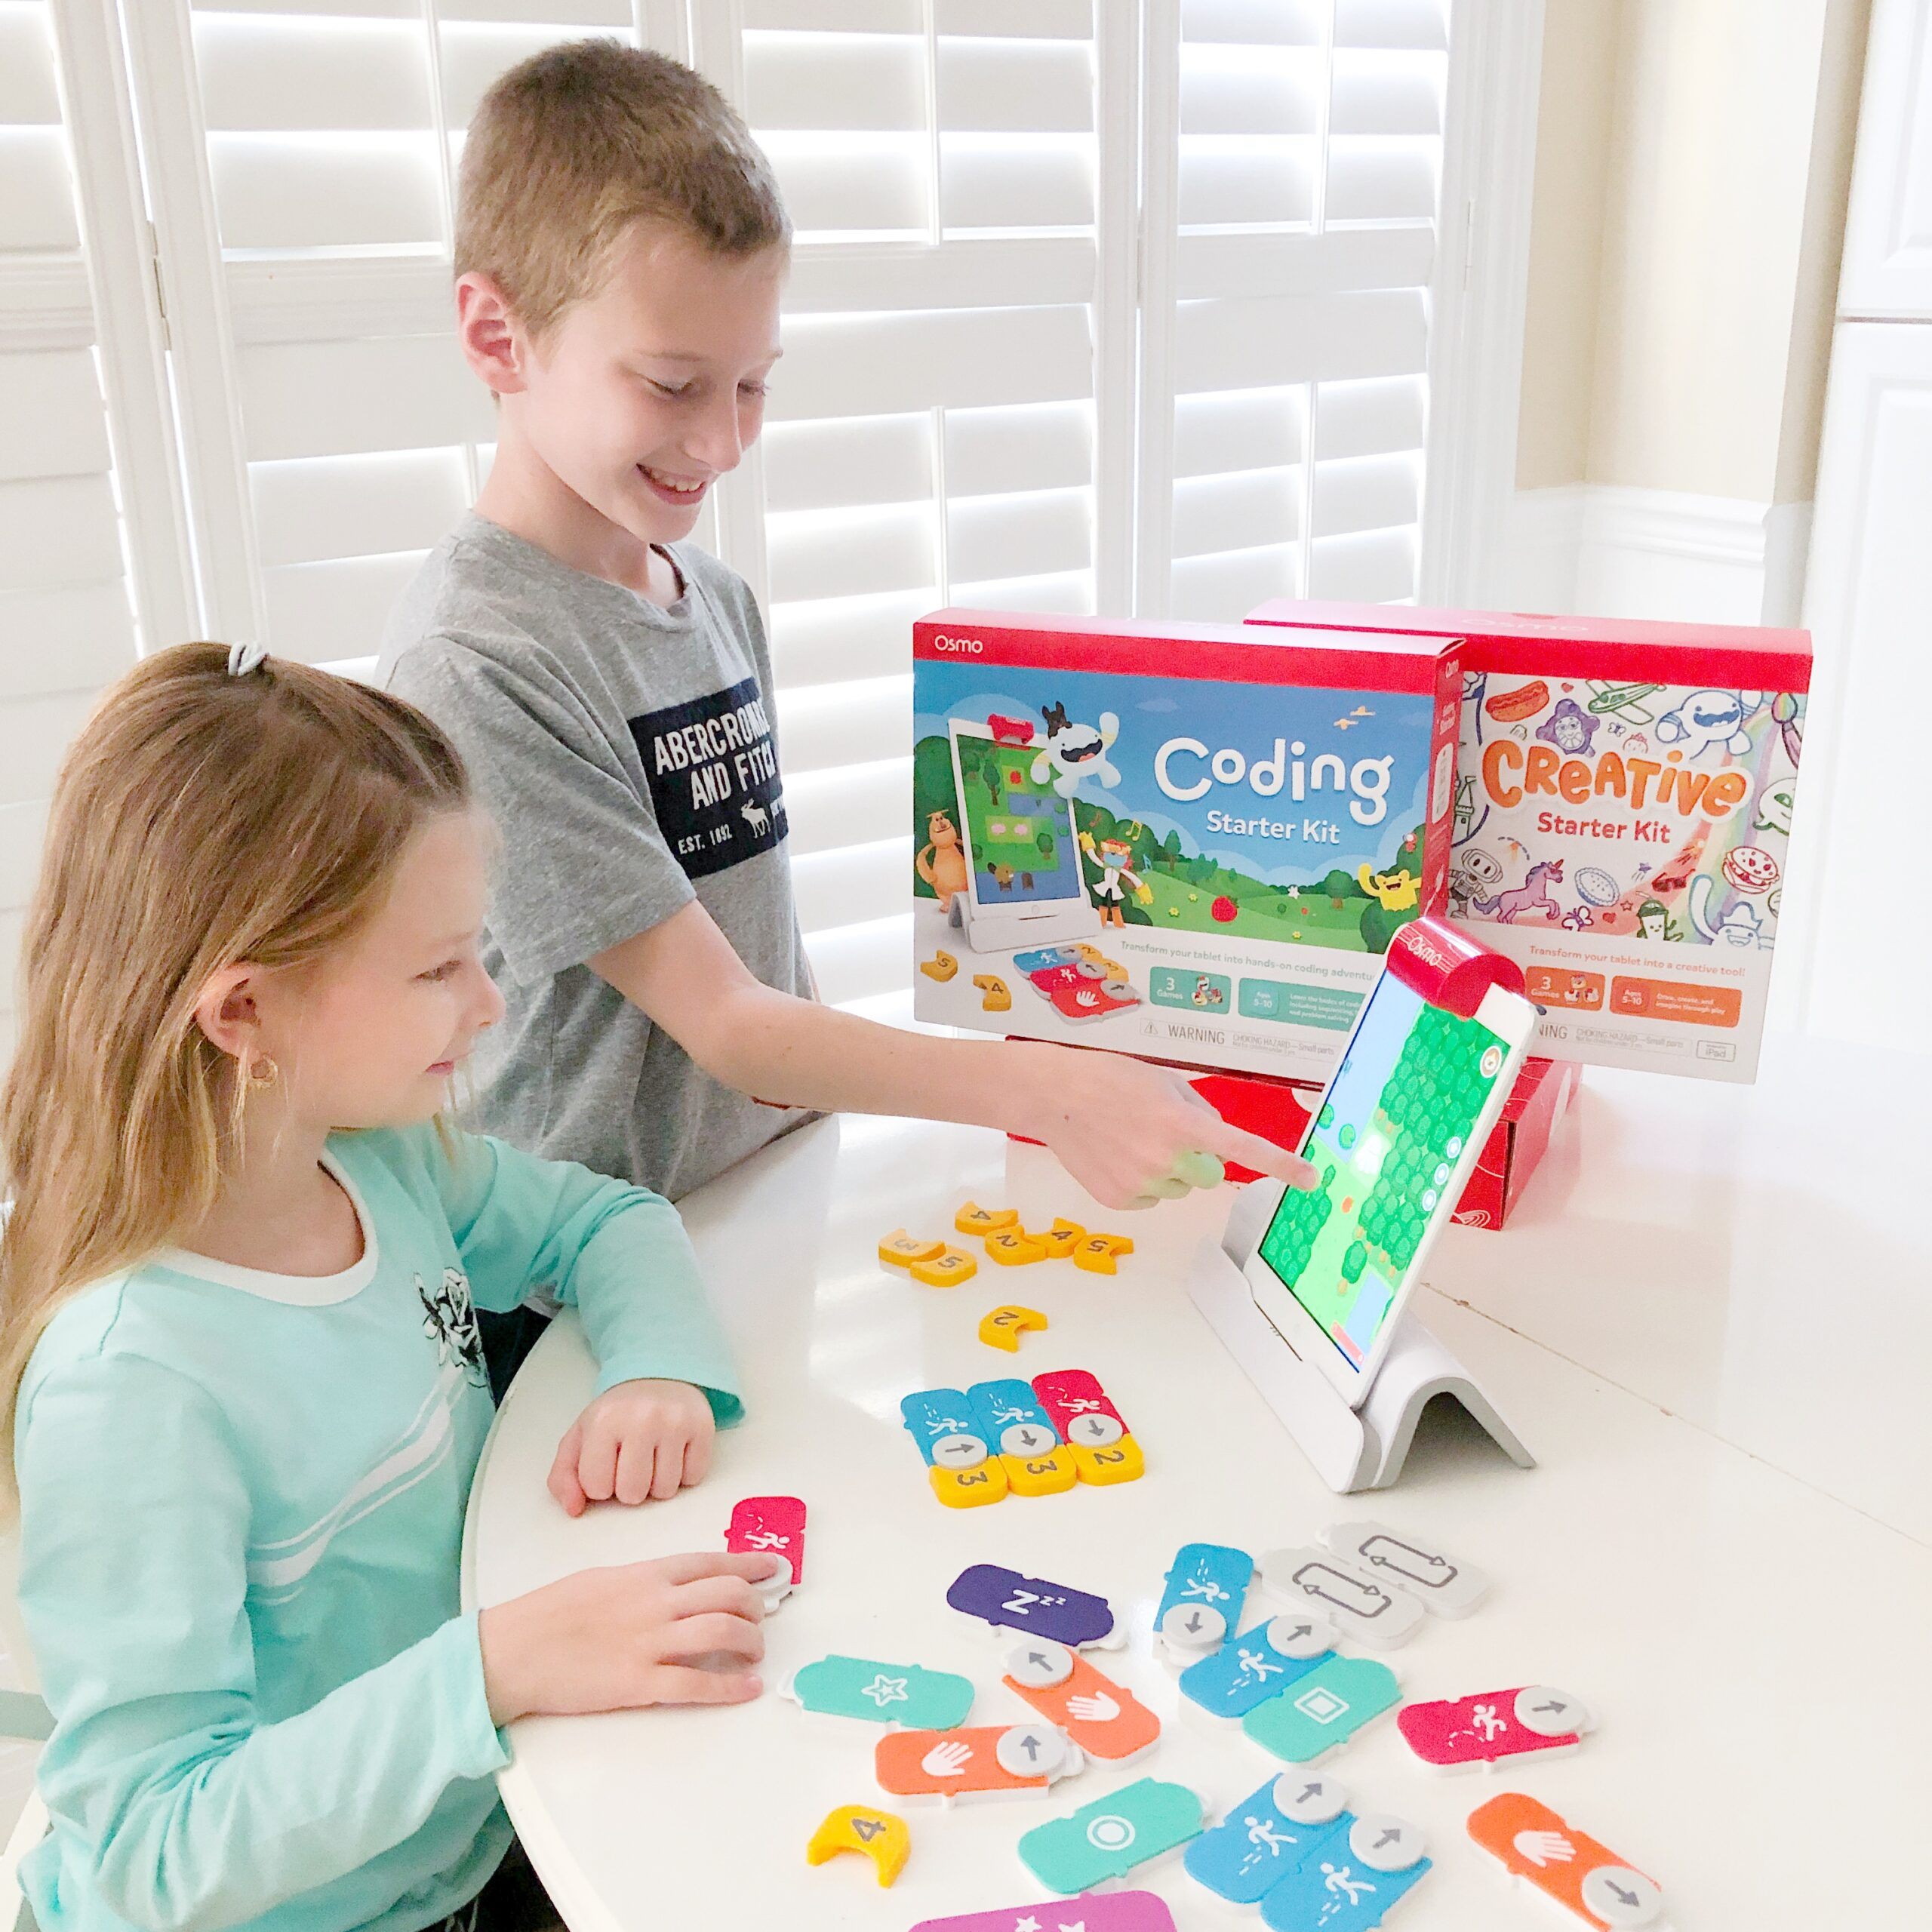 Review: Osmo Creative & Coding Starter Kit